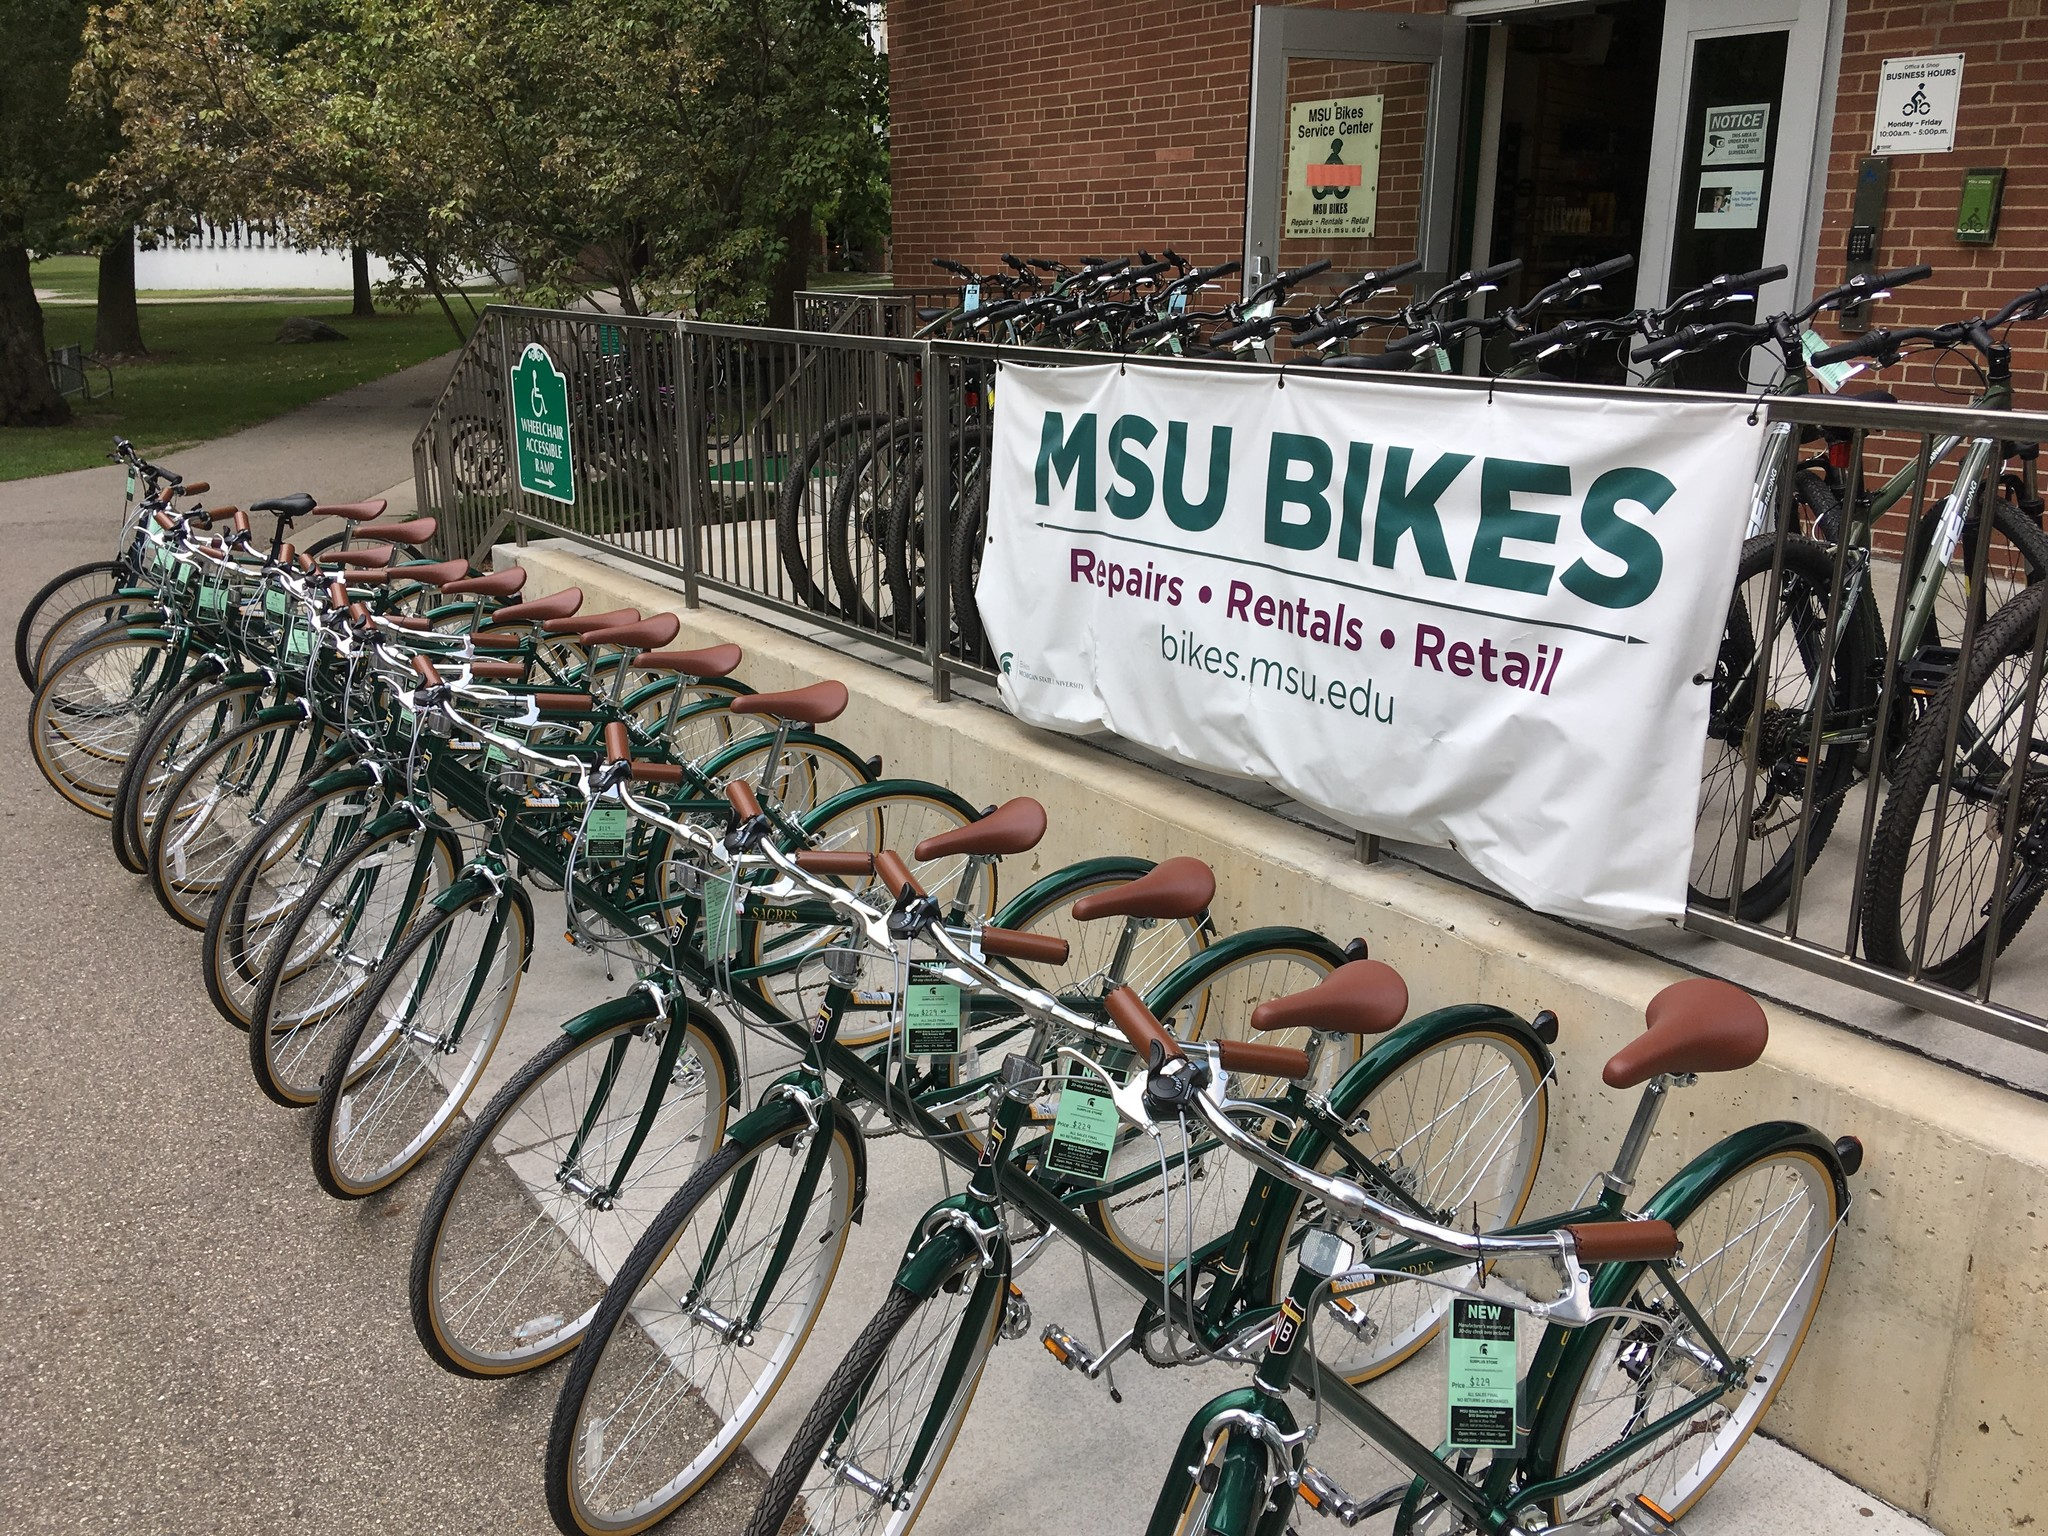 Example rental bikes from MSU Bikes